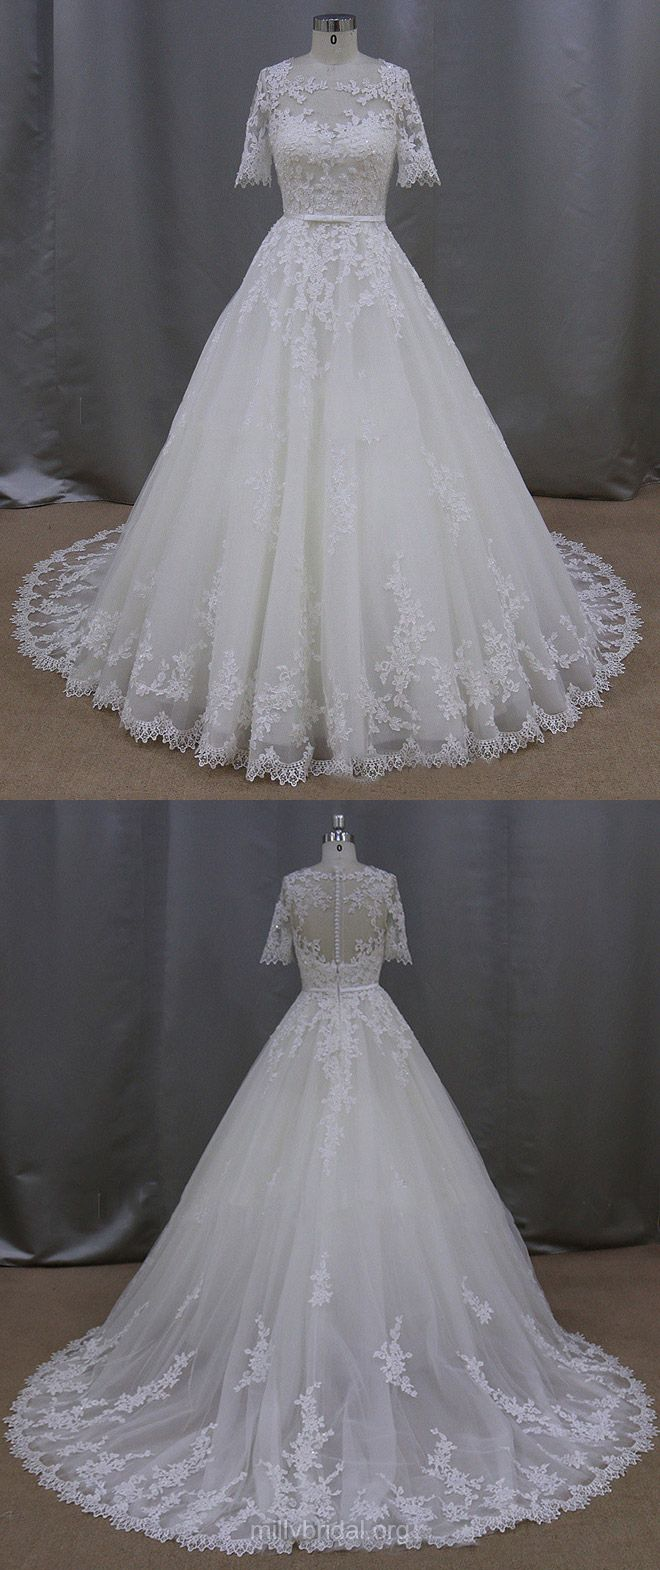 Country vintage lace wedding dresses  Ball Gown Wedding Dresses Lace Country Wedding Dress Vintage